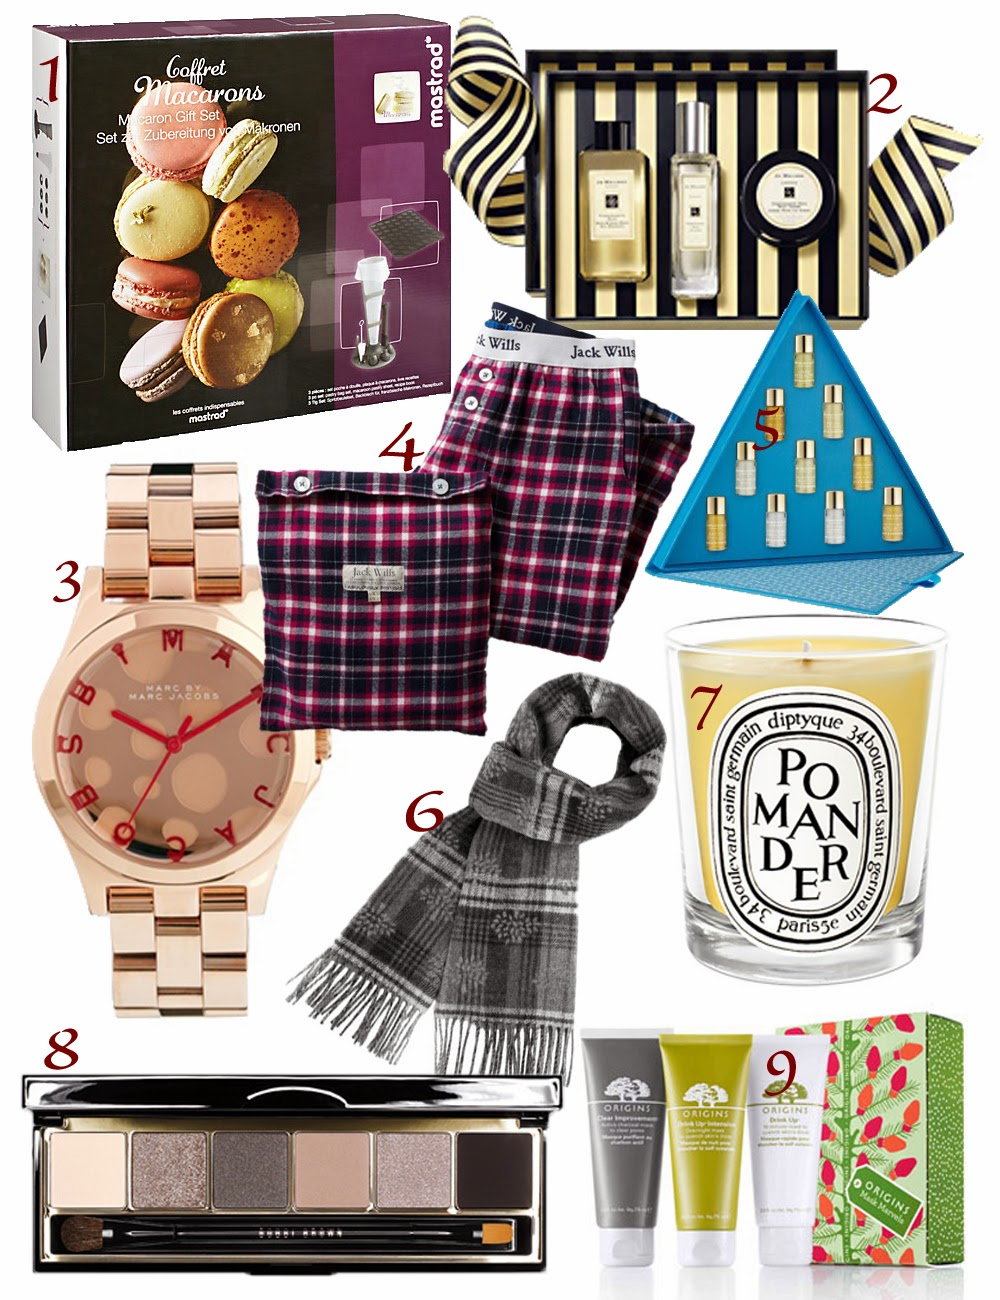 Christmas Gift Guide 2013 - Gifts for Her | Baking Fashion